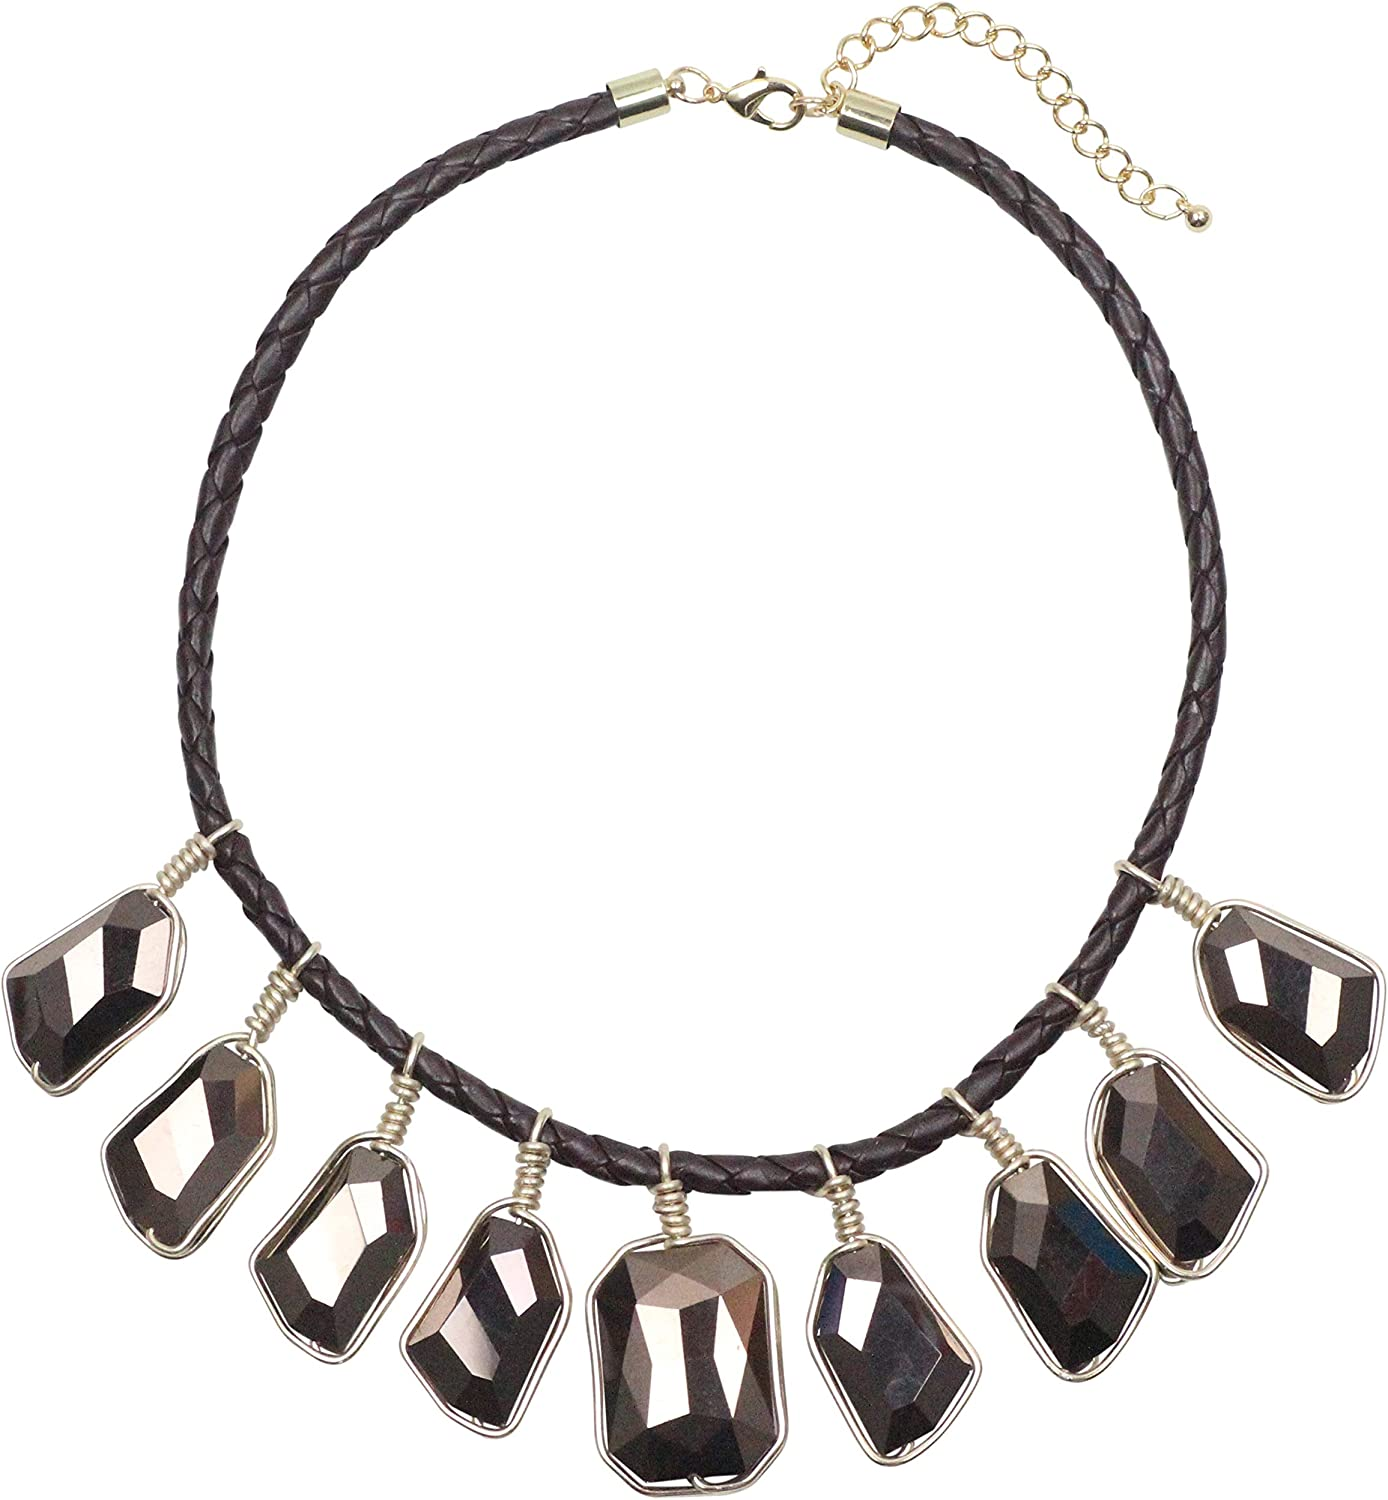 Fashion Leather Braided Rope Big Acrylic Beads Collar Chunky Necklace for Women